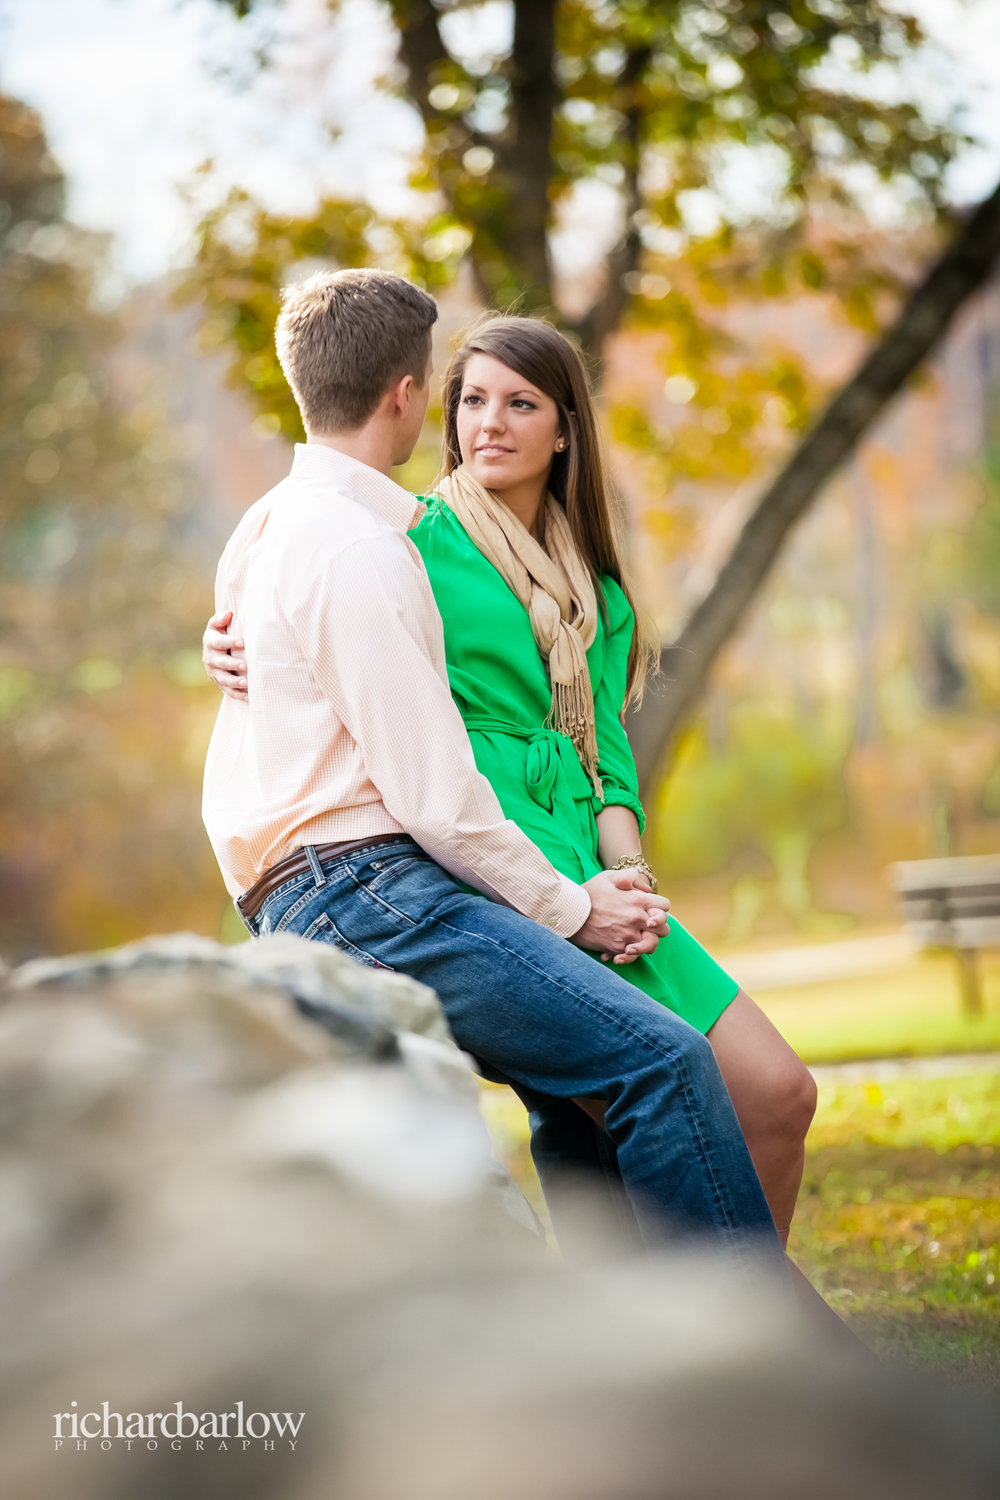 richard barlow photography - Graham and Lauren Engagement Session Wake Forest-6.jpg